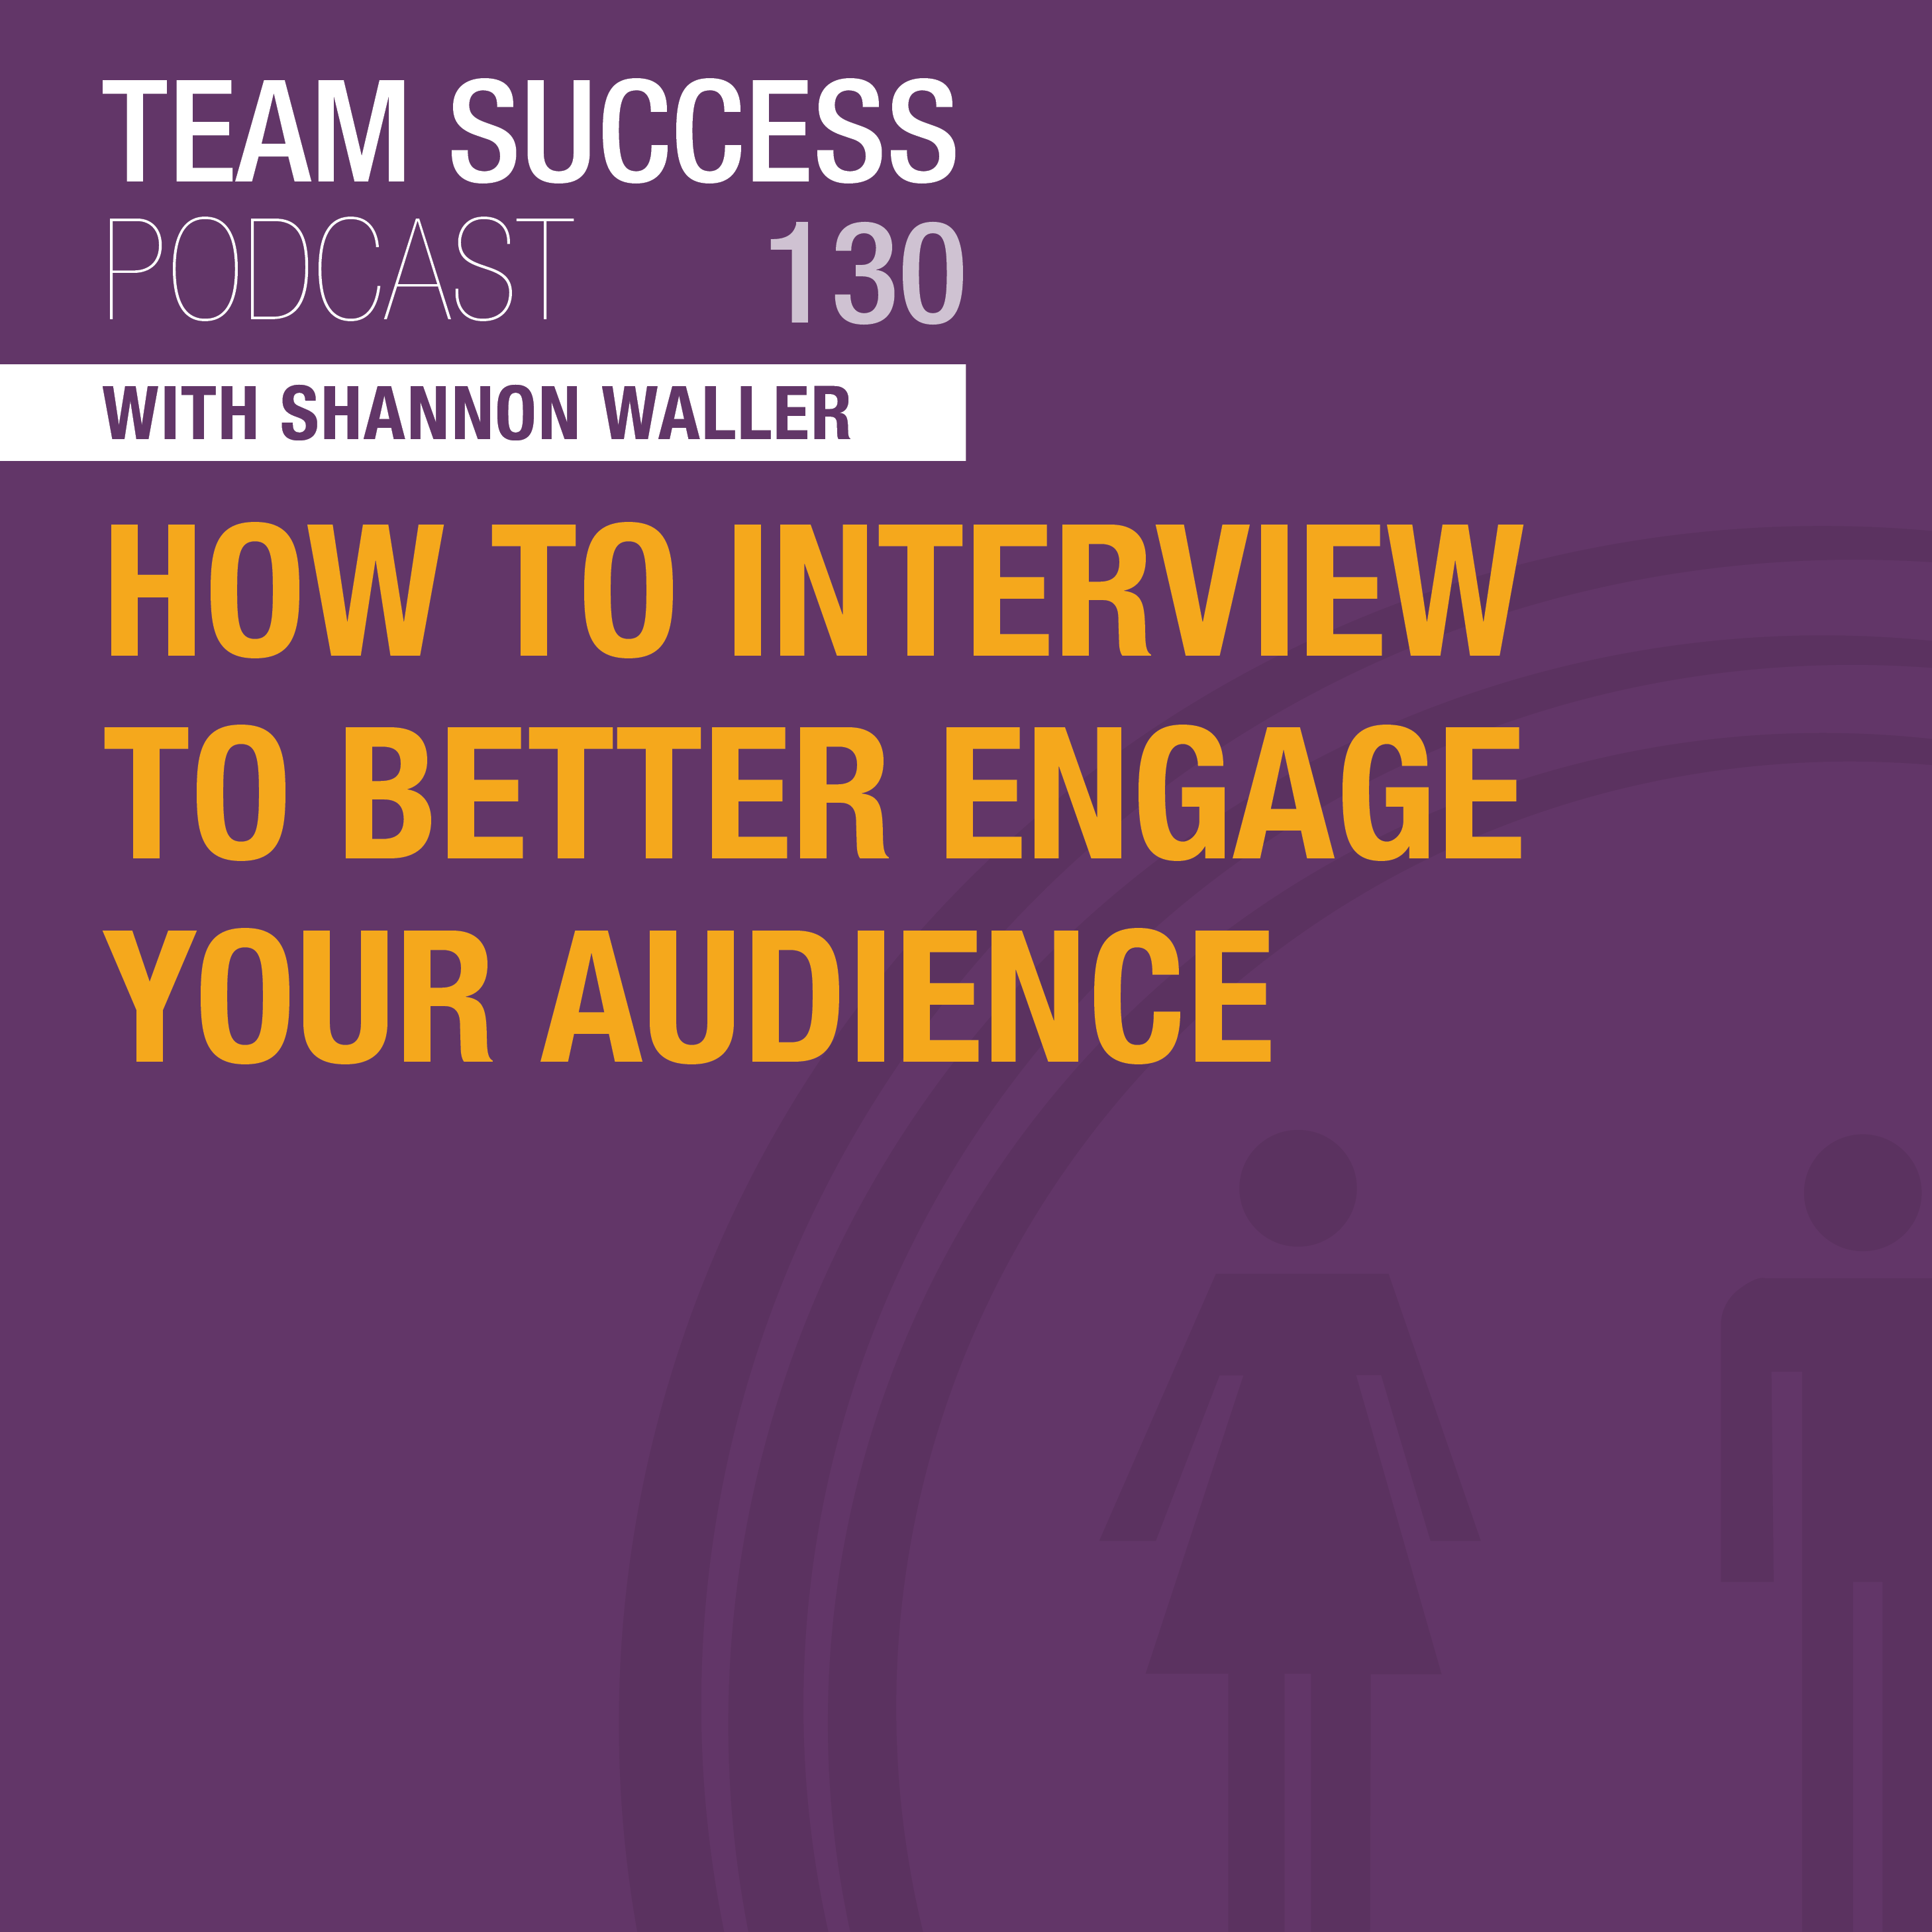 How To Interview To Better Engage Your Audience - Team Success Podcast